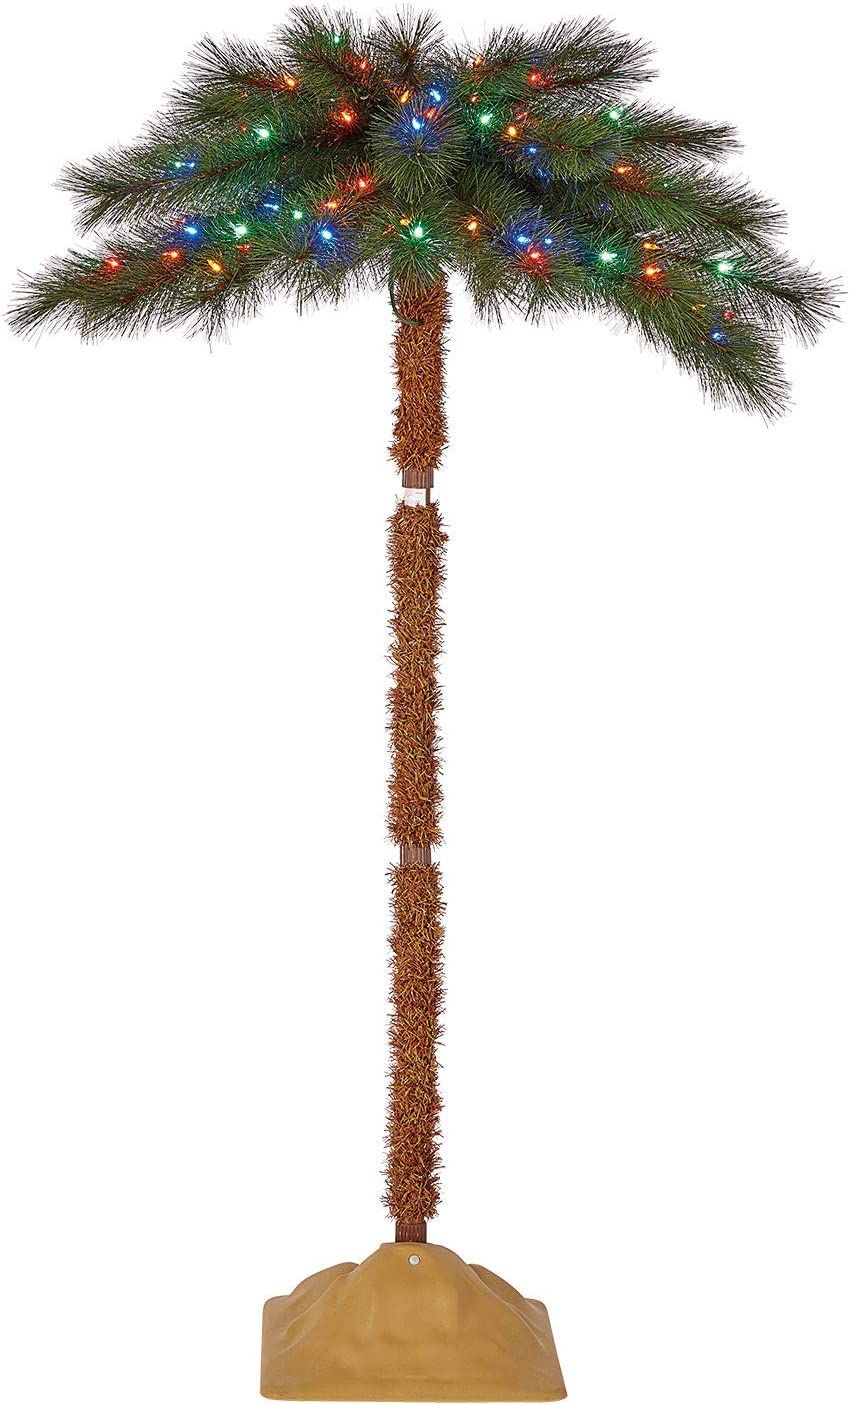 Home Heritage 5 Foot Artificial Pre-Lit Christmas Palm Tree with Multi Color LED Lights and Stand